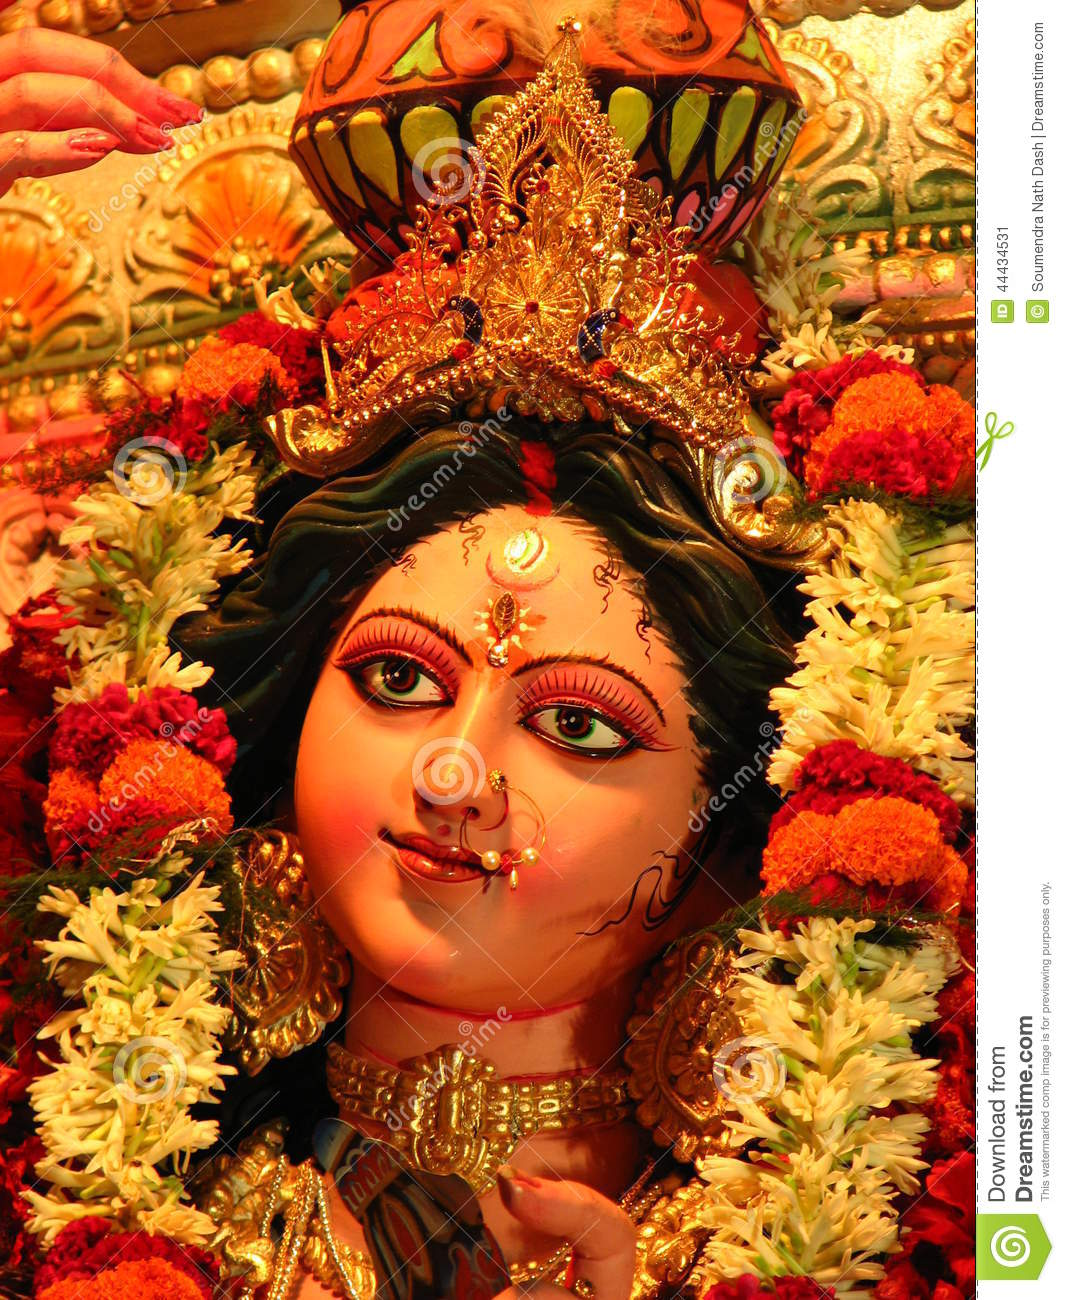 Amman Wallpaper 3d Hd Goddess Durga Idol Stock Photo Image 44434531